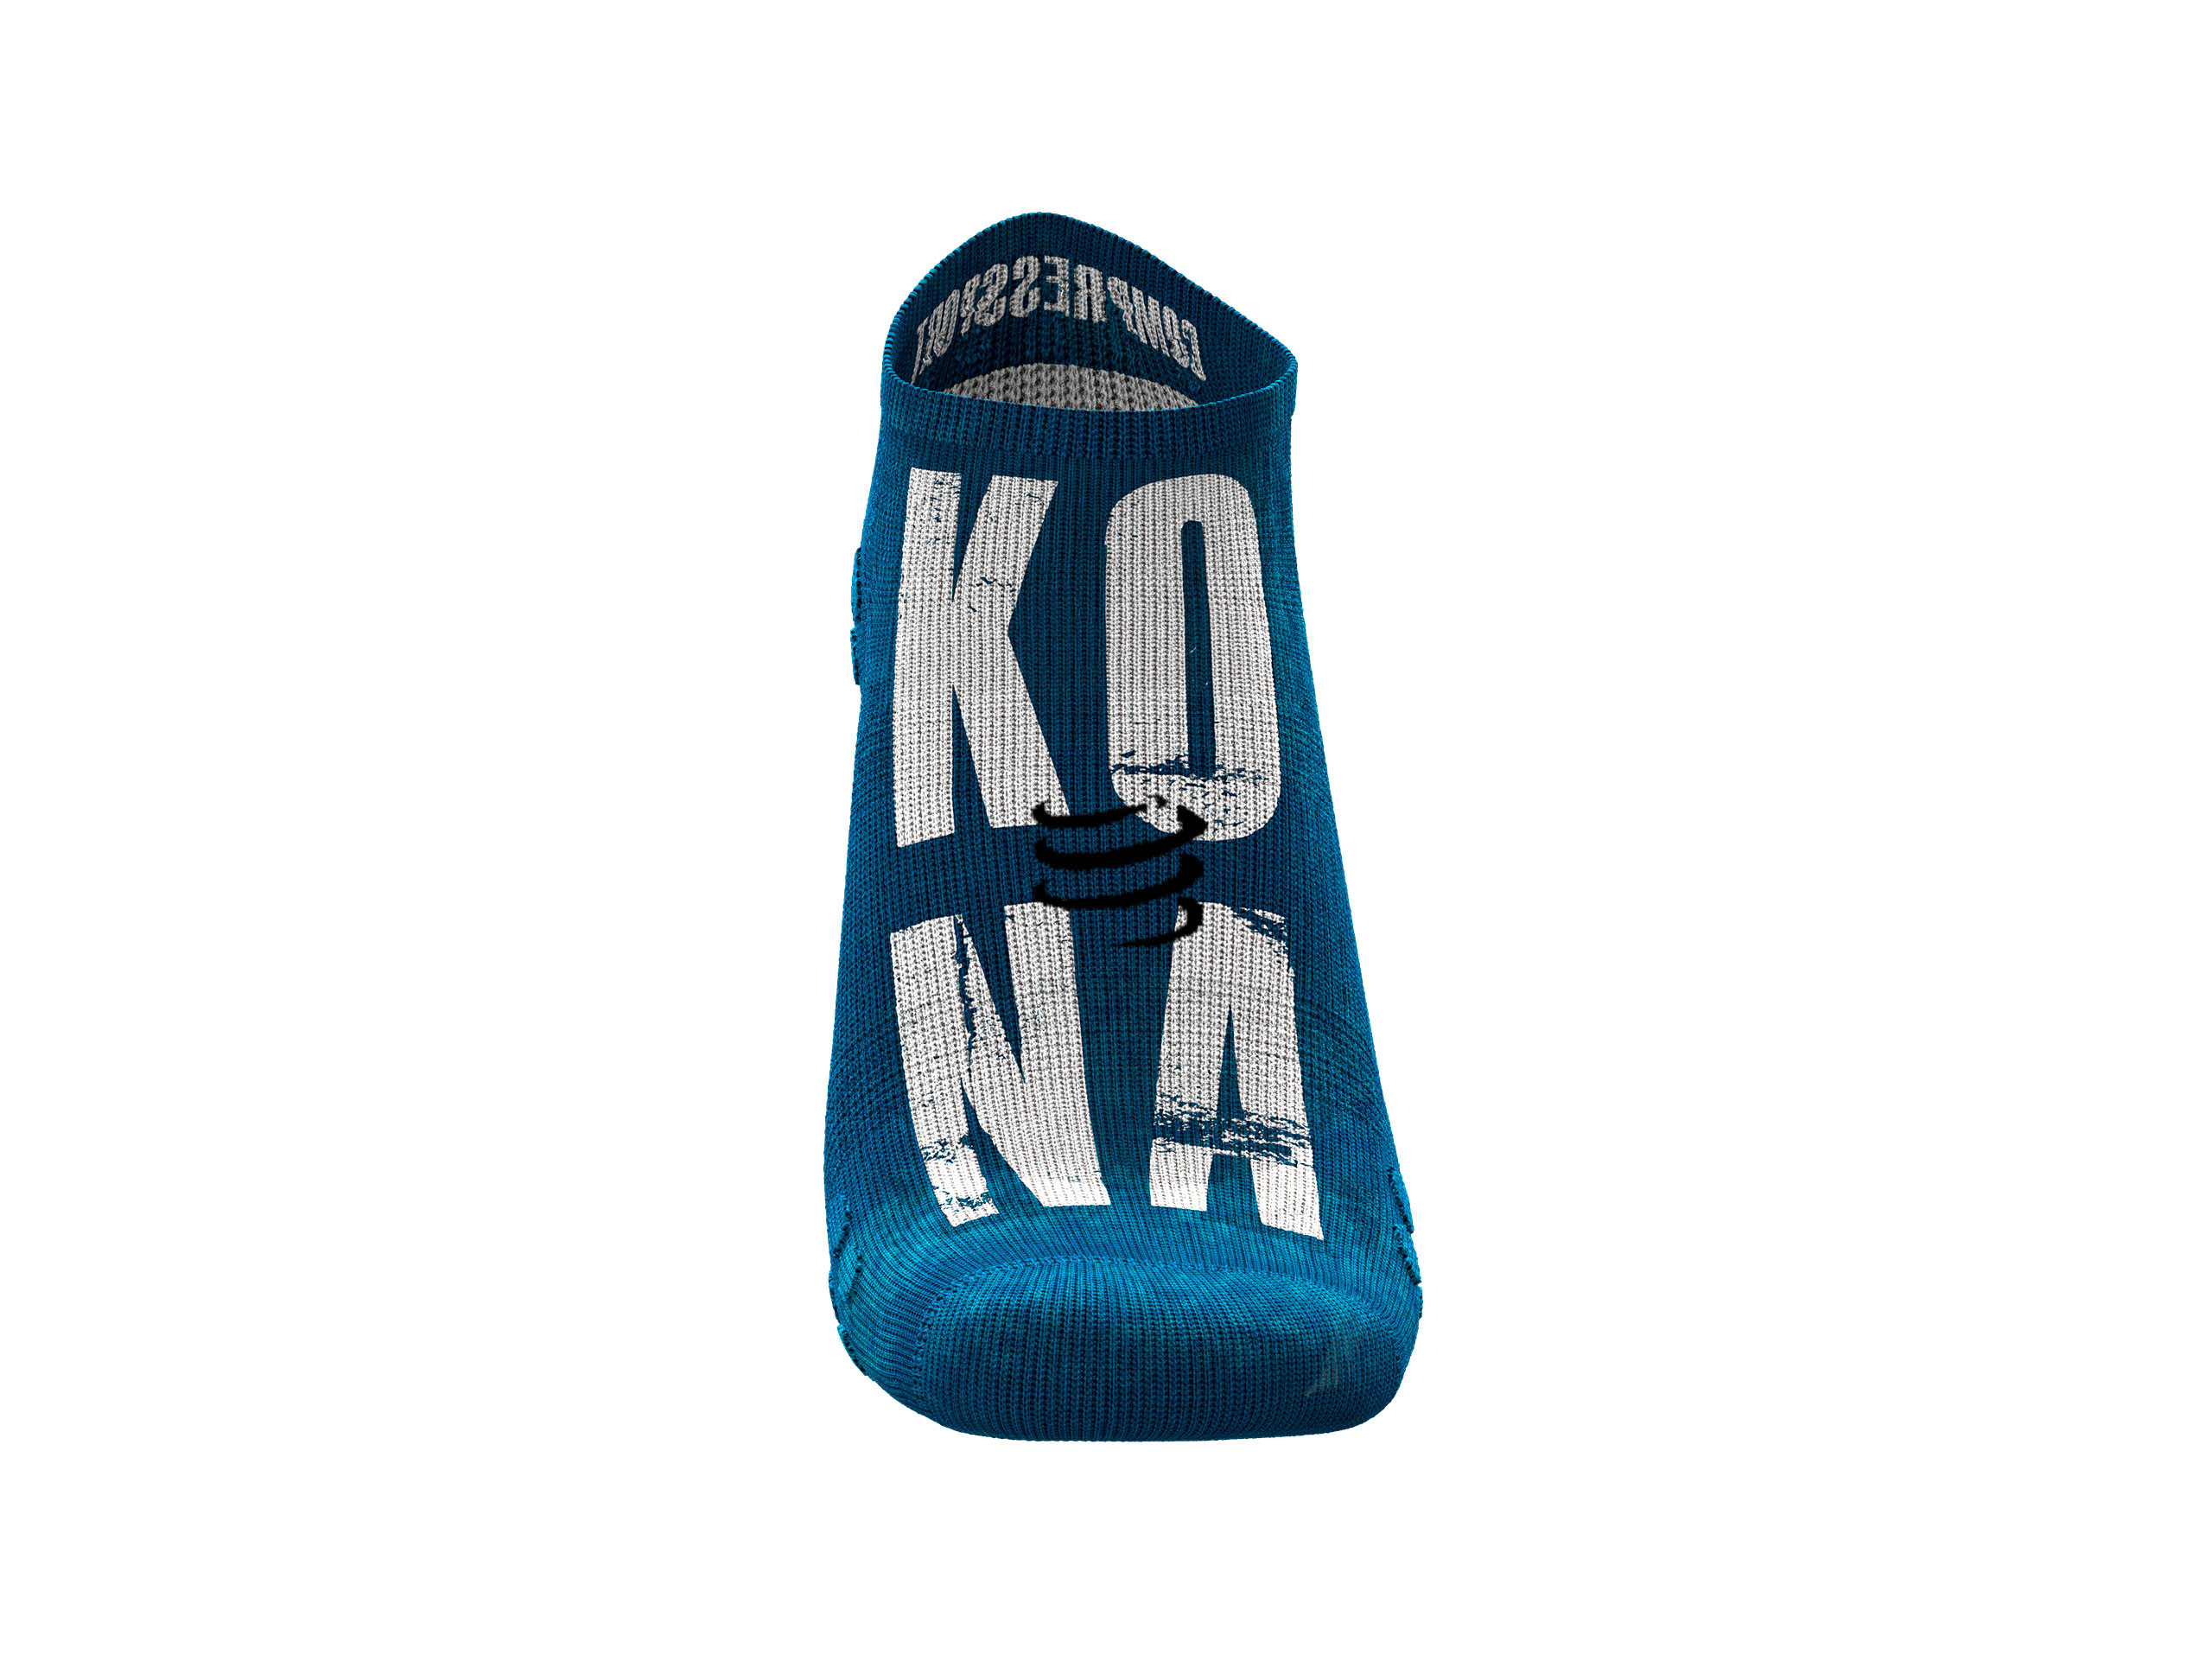 Pro Racing Socks v3.0 Ultralight Run Low - Kona 2019